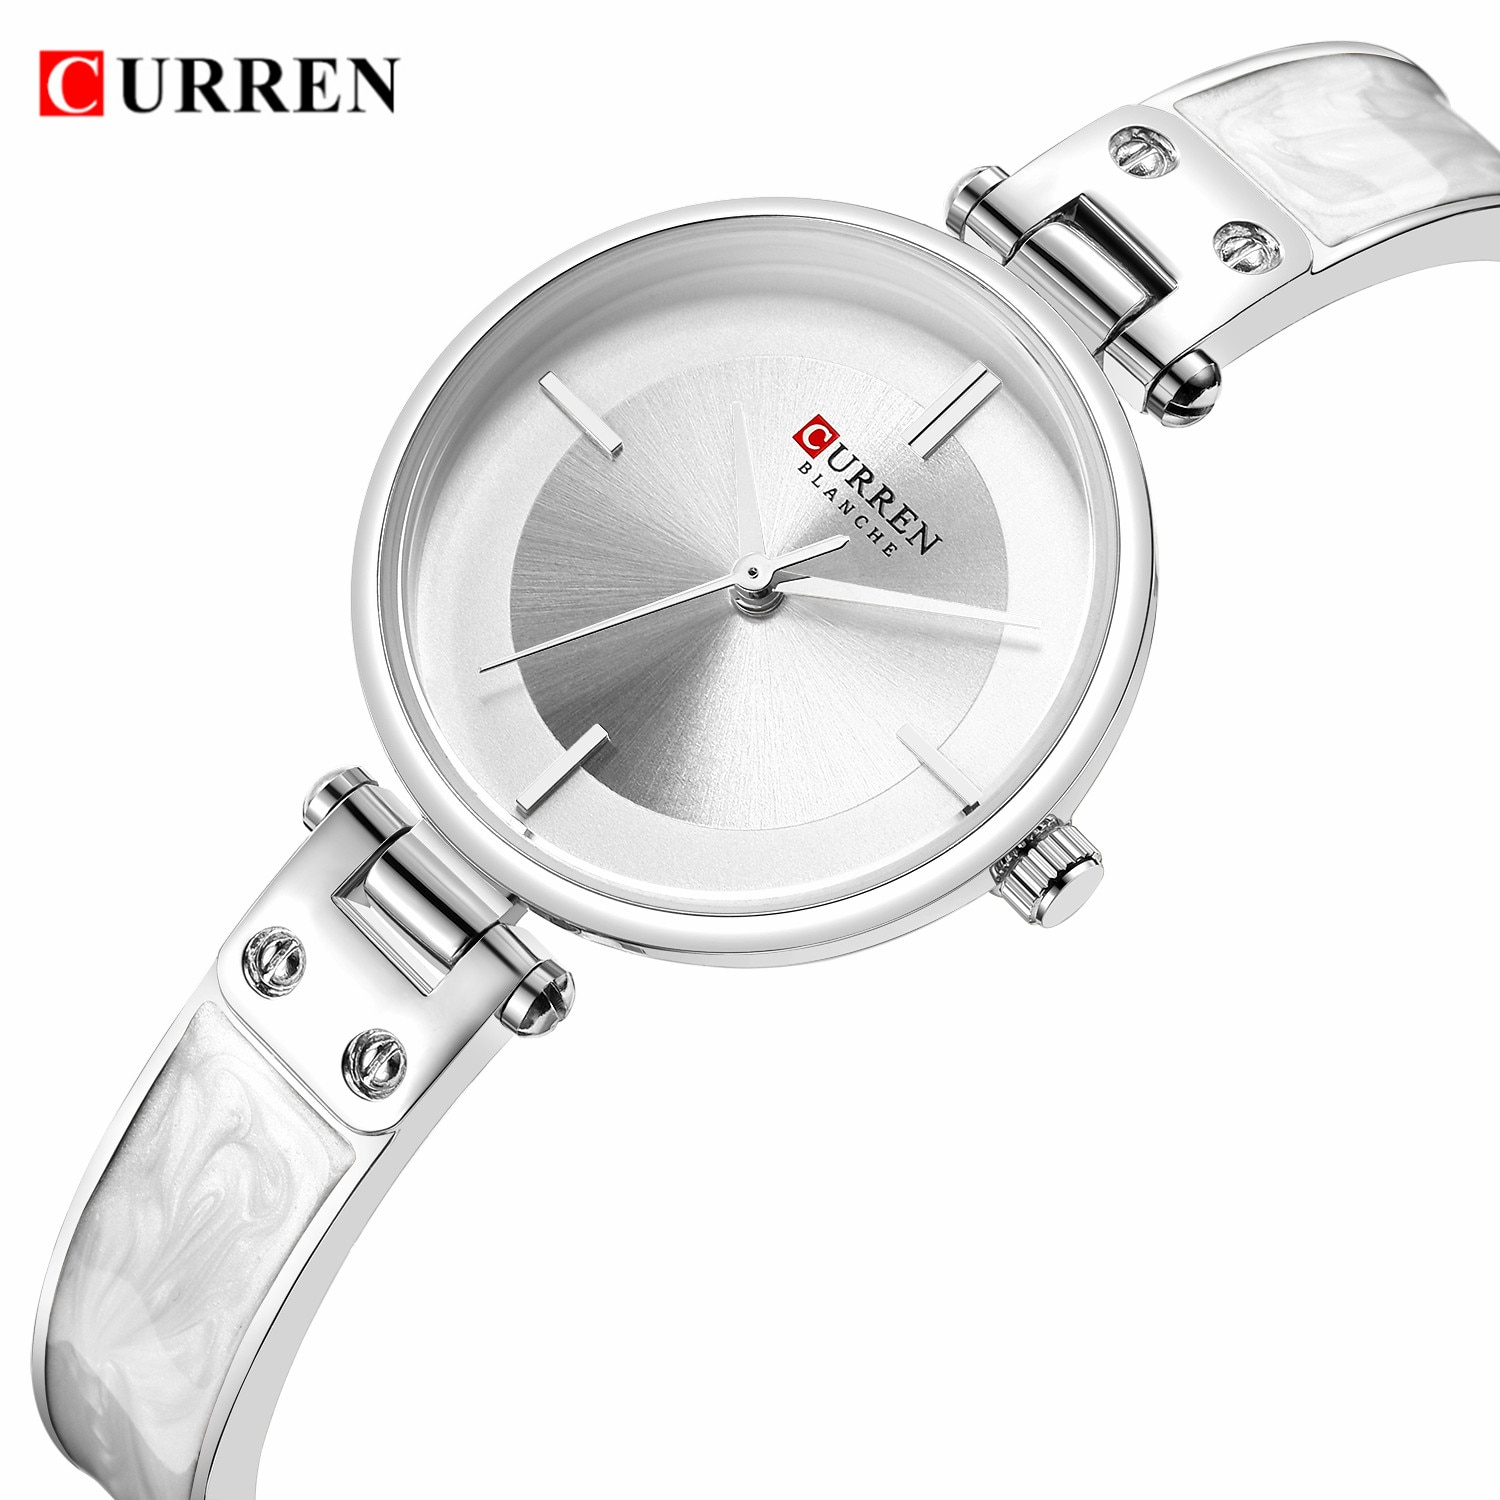 CURREN Women Watches Silver White Ultra-Thin Case Quartz Wristwatch Steel Bracelet Relogio Mujer Clock Waterproof Dropship 2019 enlarge